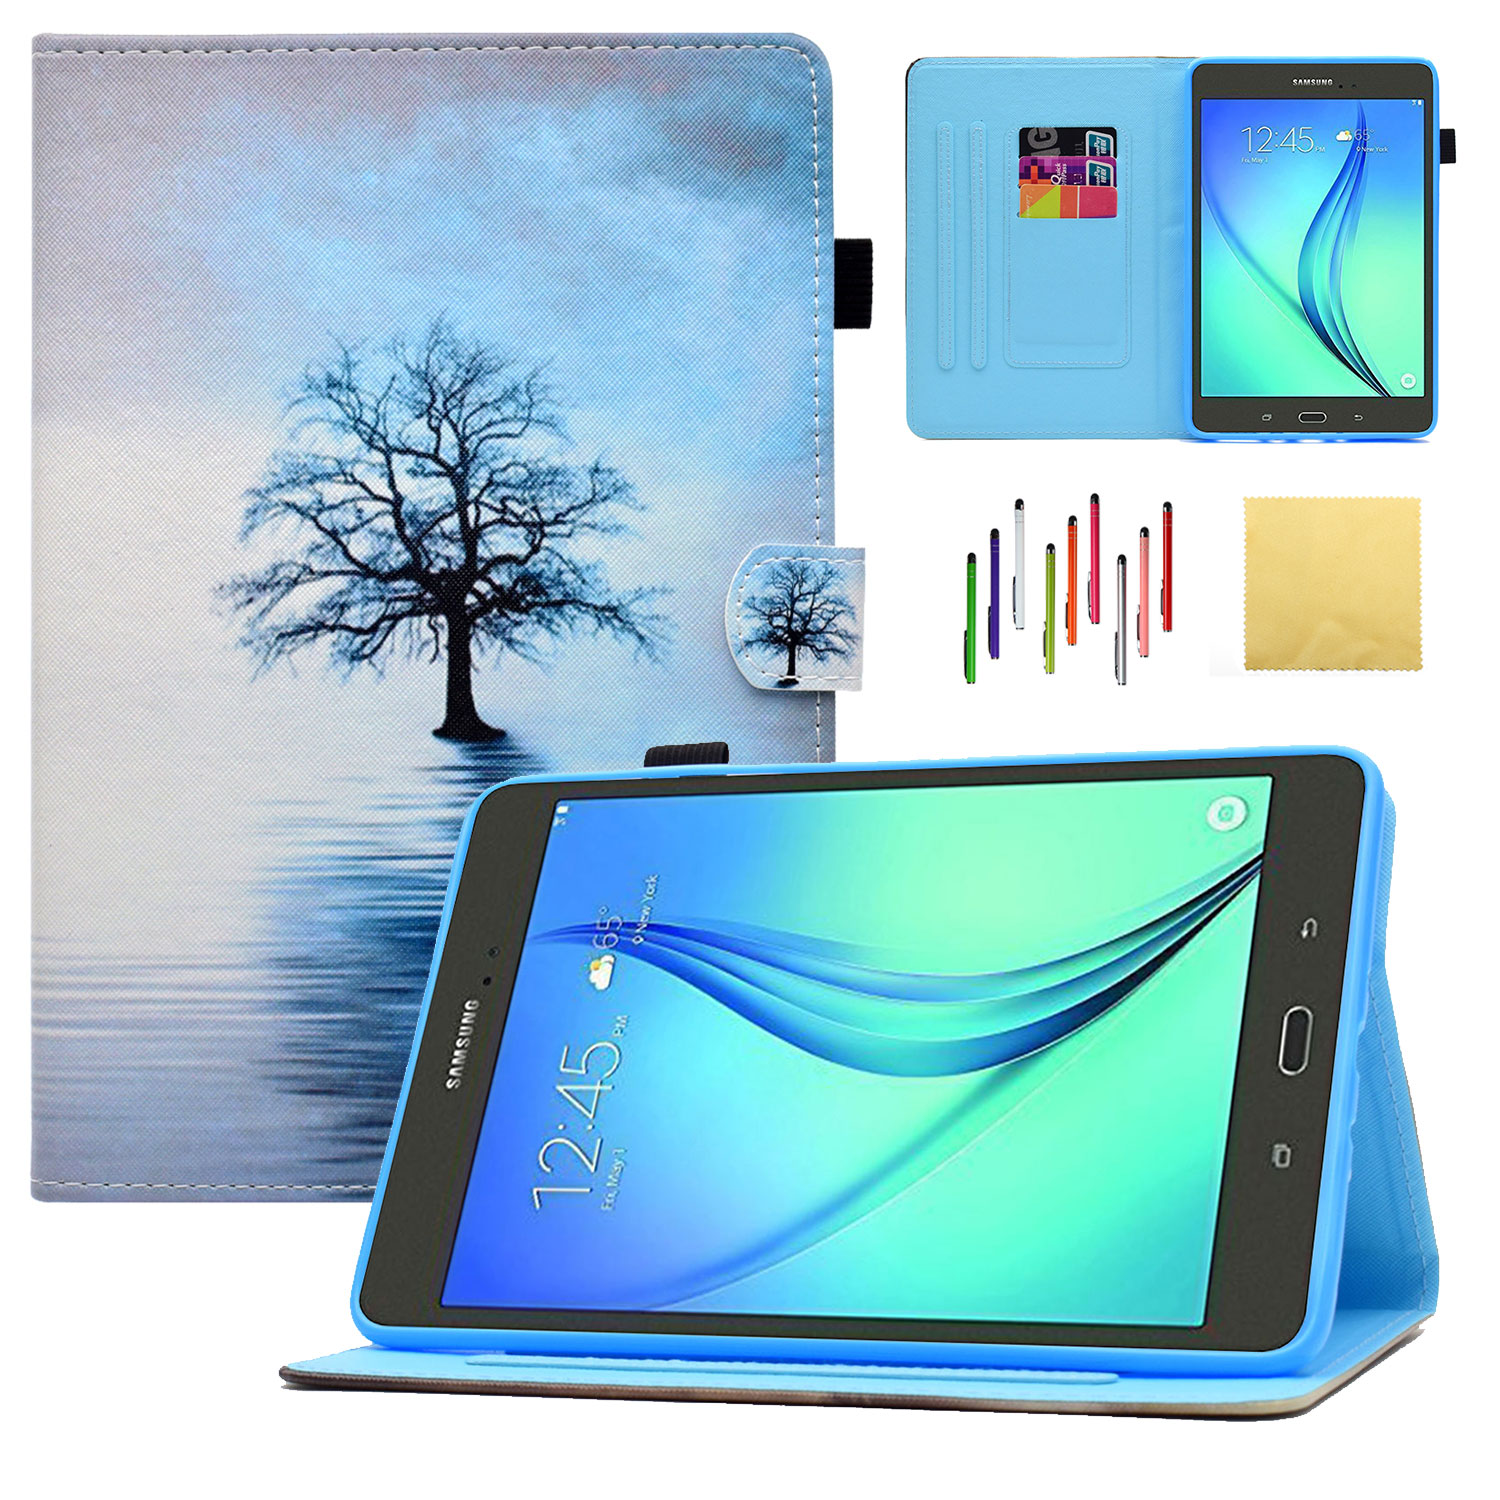 Galaxy Tab A 8.0 (SM-T350/P350) Case, Goodest Smart PU Leather Folio Folding Stand Cover with Pencil Holder Auto Wake/Sleep for Samsung 8 inch Tablet [NOT Fit 2017 Tab A 8.0 SM-T380], Water Cat